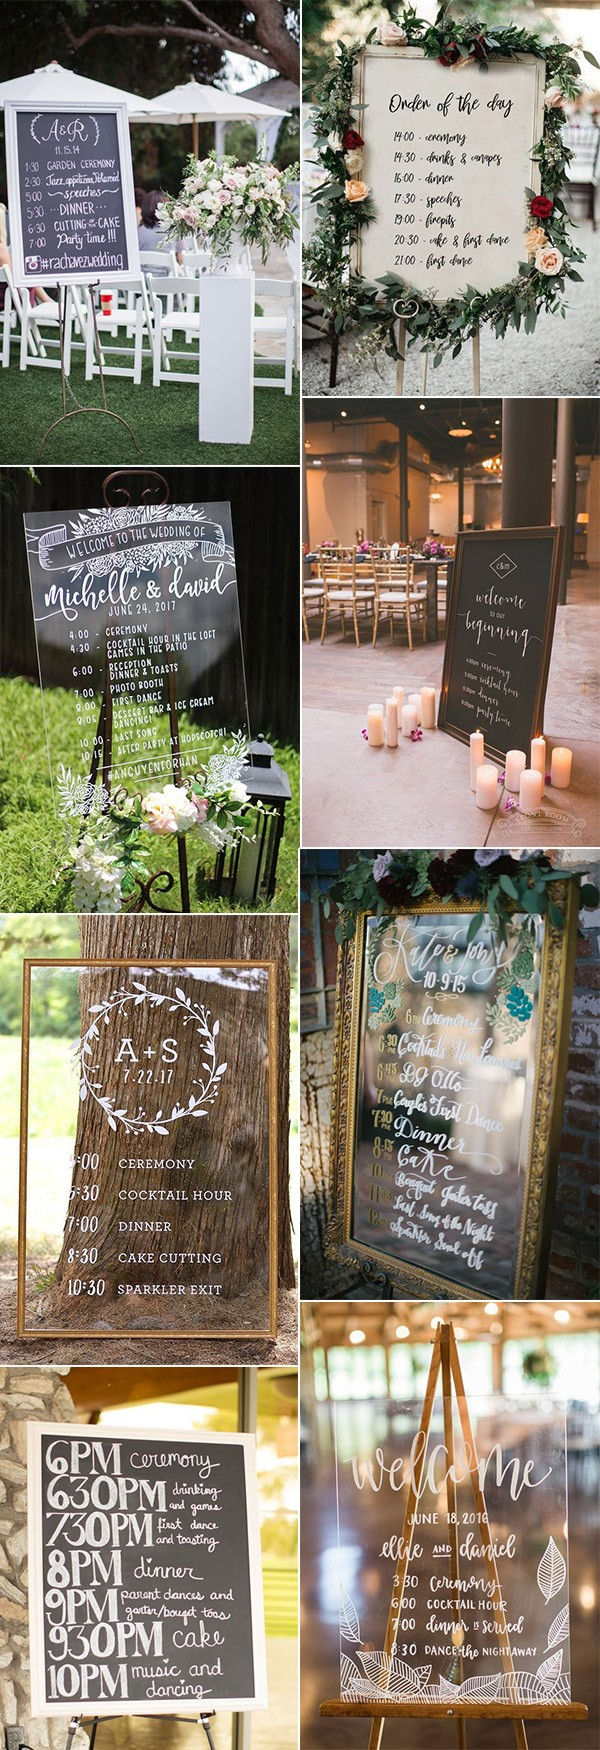 wedding sign ideas with timeline of the day